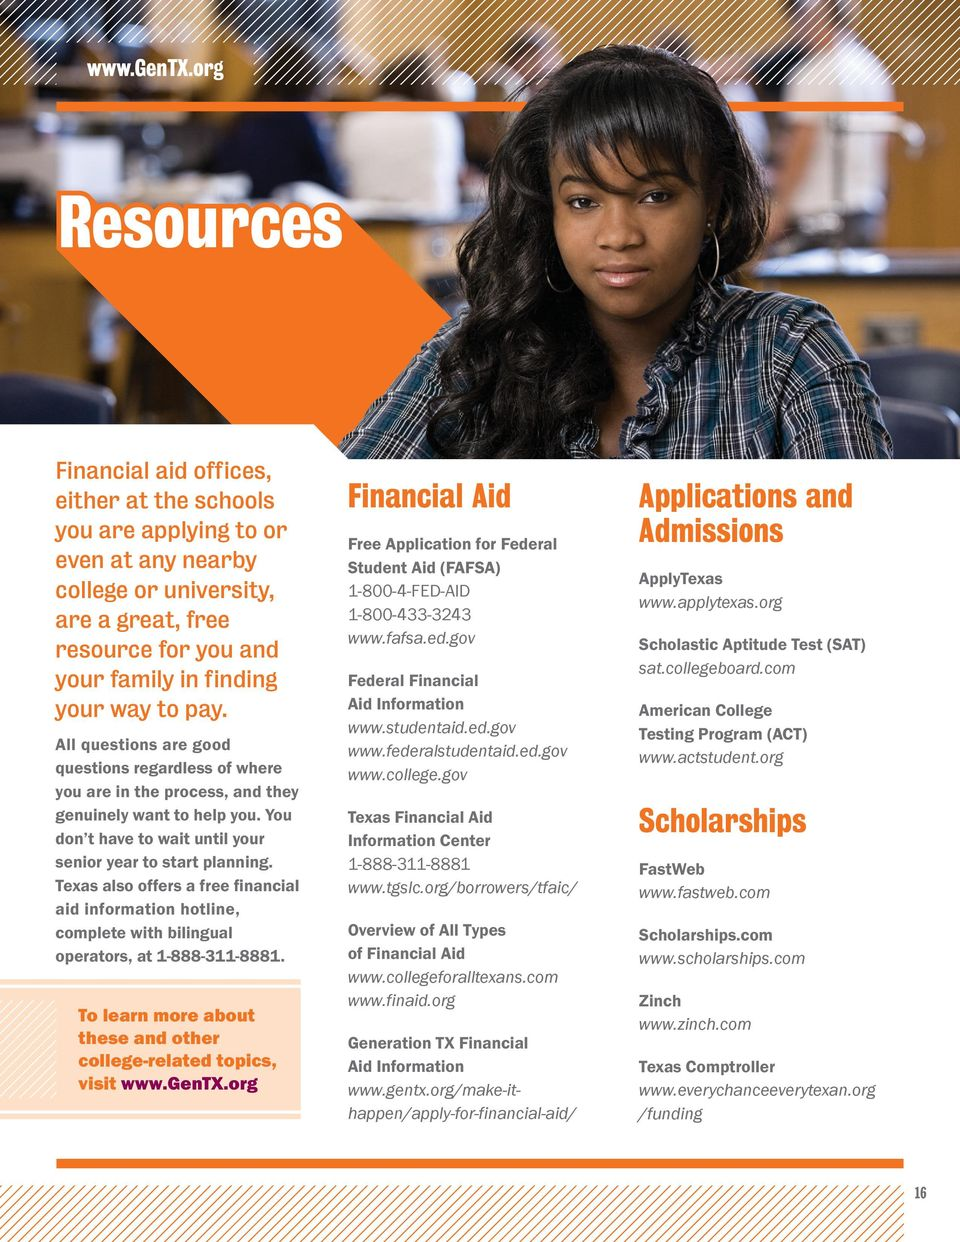 Texas also offers a free financial aid information hotline, complete with bilingual operators, at 1-888-311-8881. To learn more about these and other college-related topics, visit www.gentx.